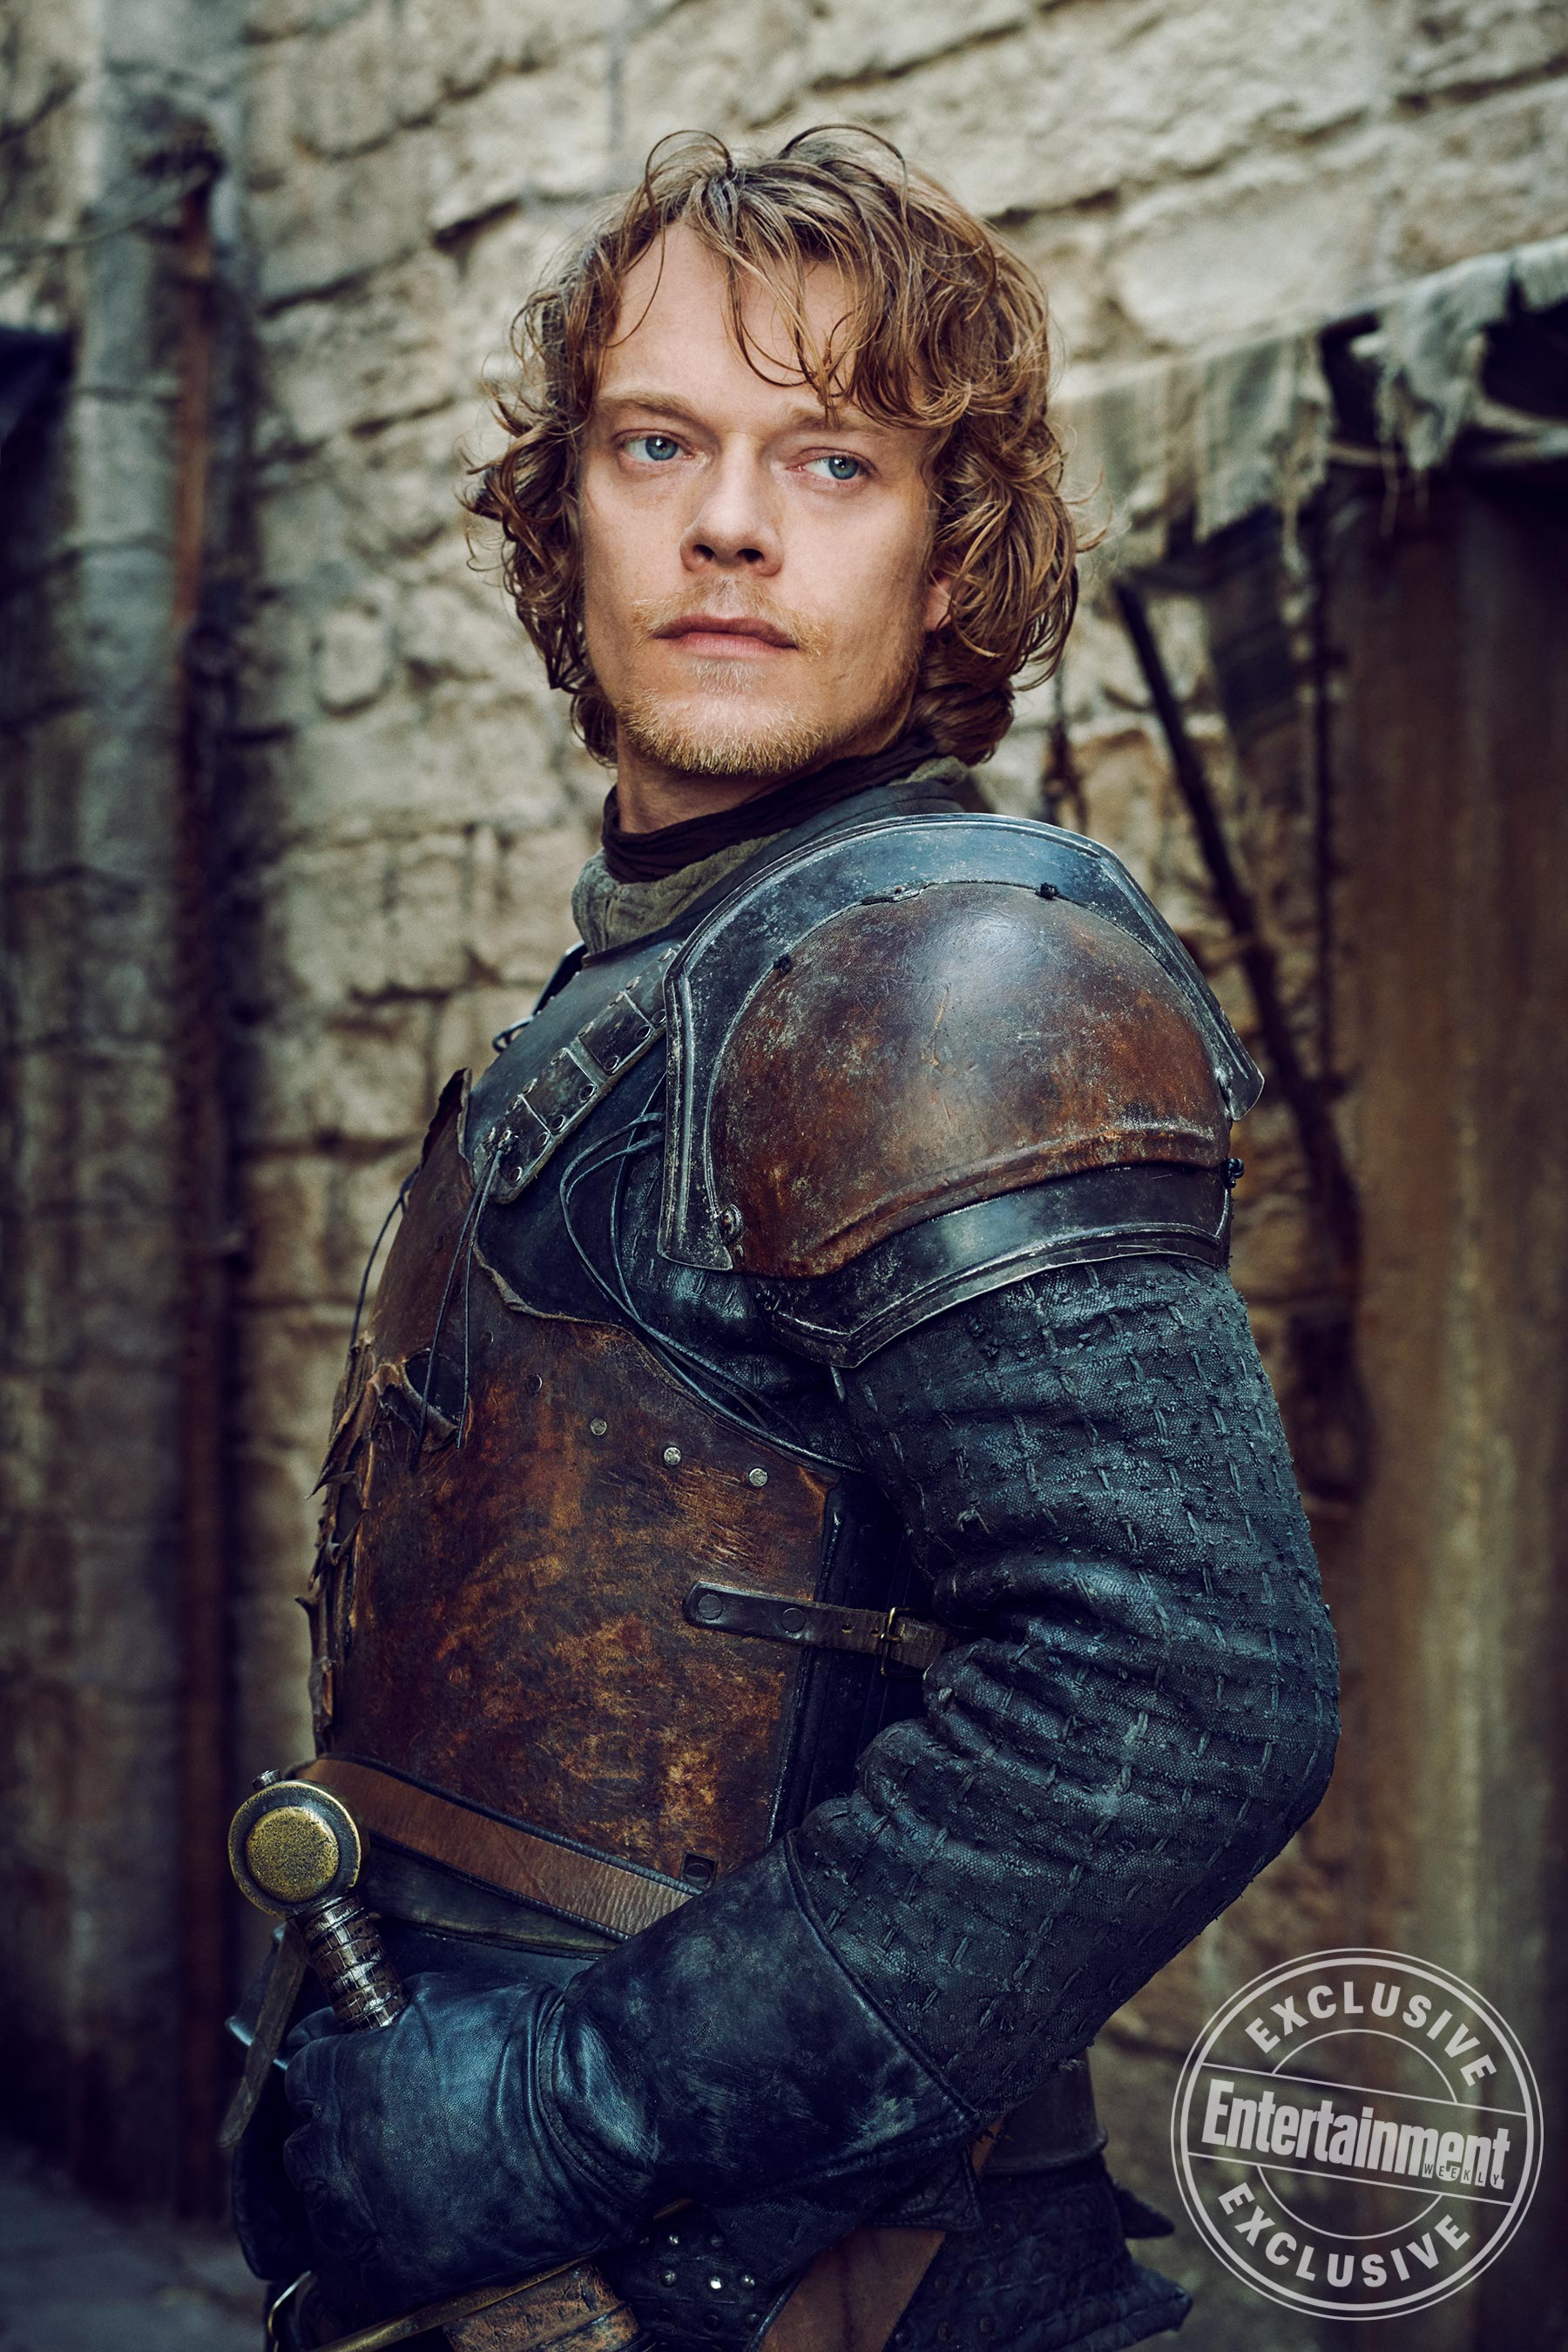 Entertainment Weekly Photoshoot - 2019 - Alfie Allen as Theon Greyjoy